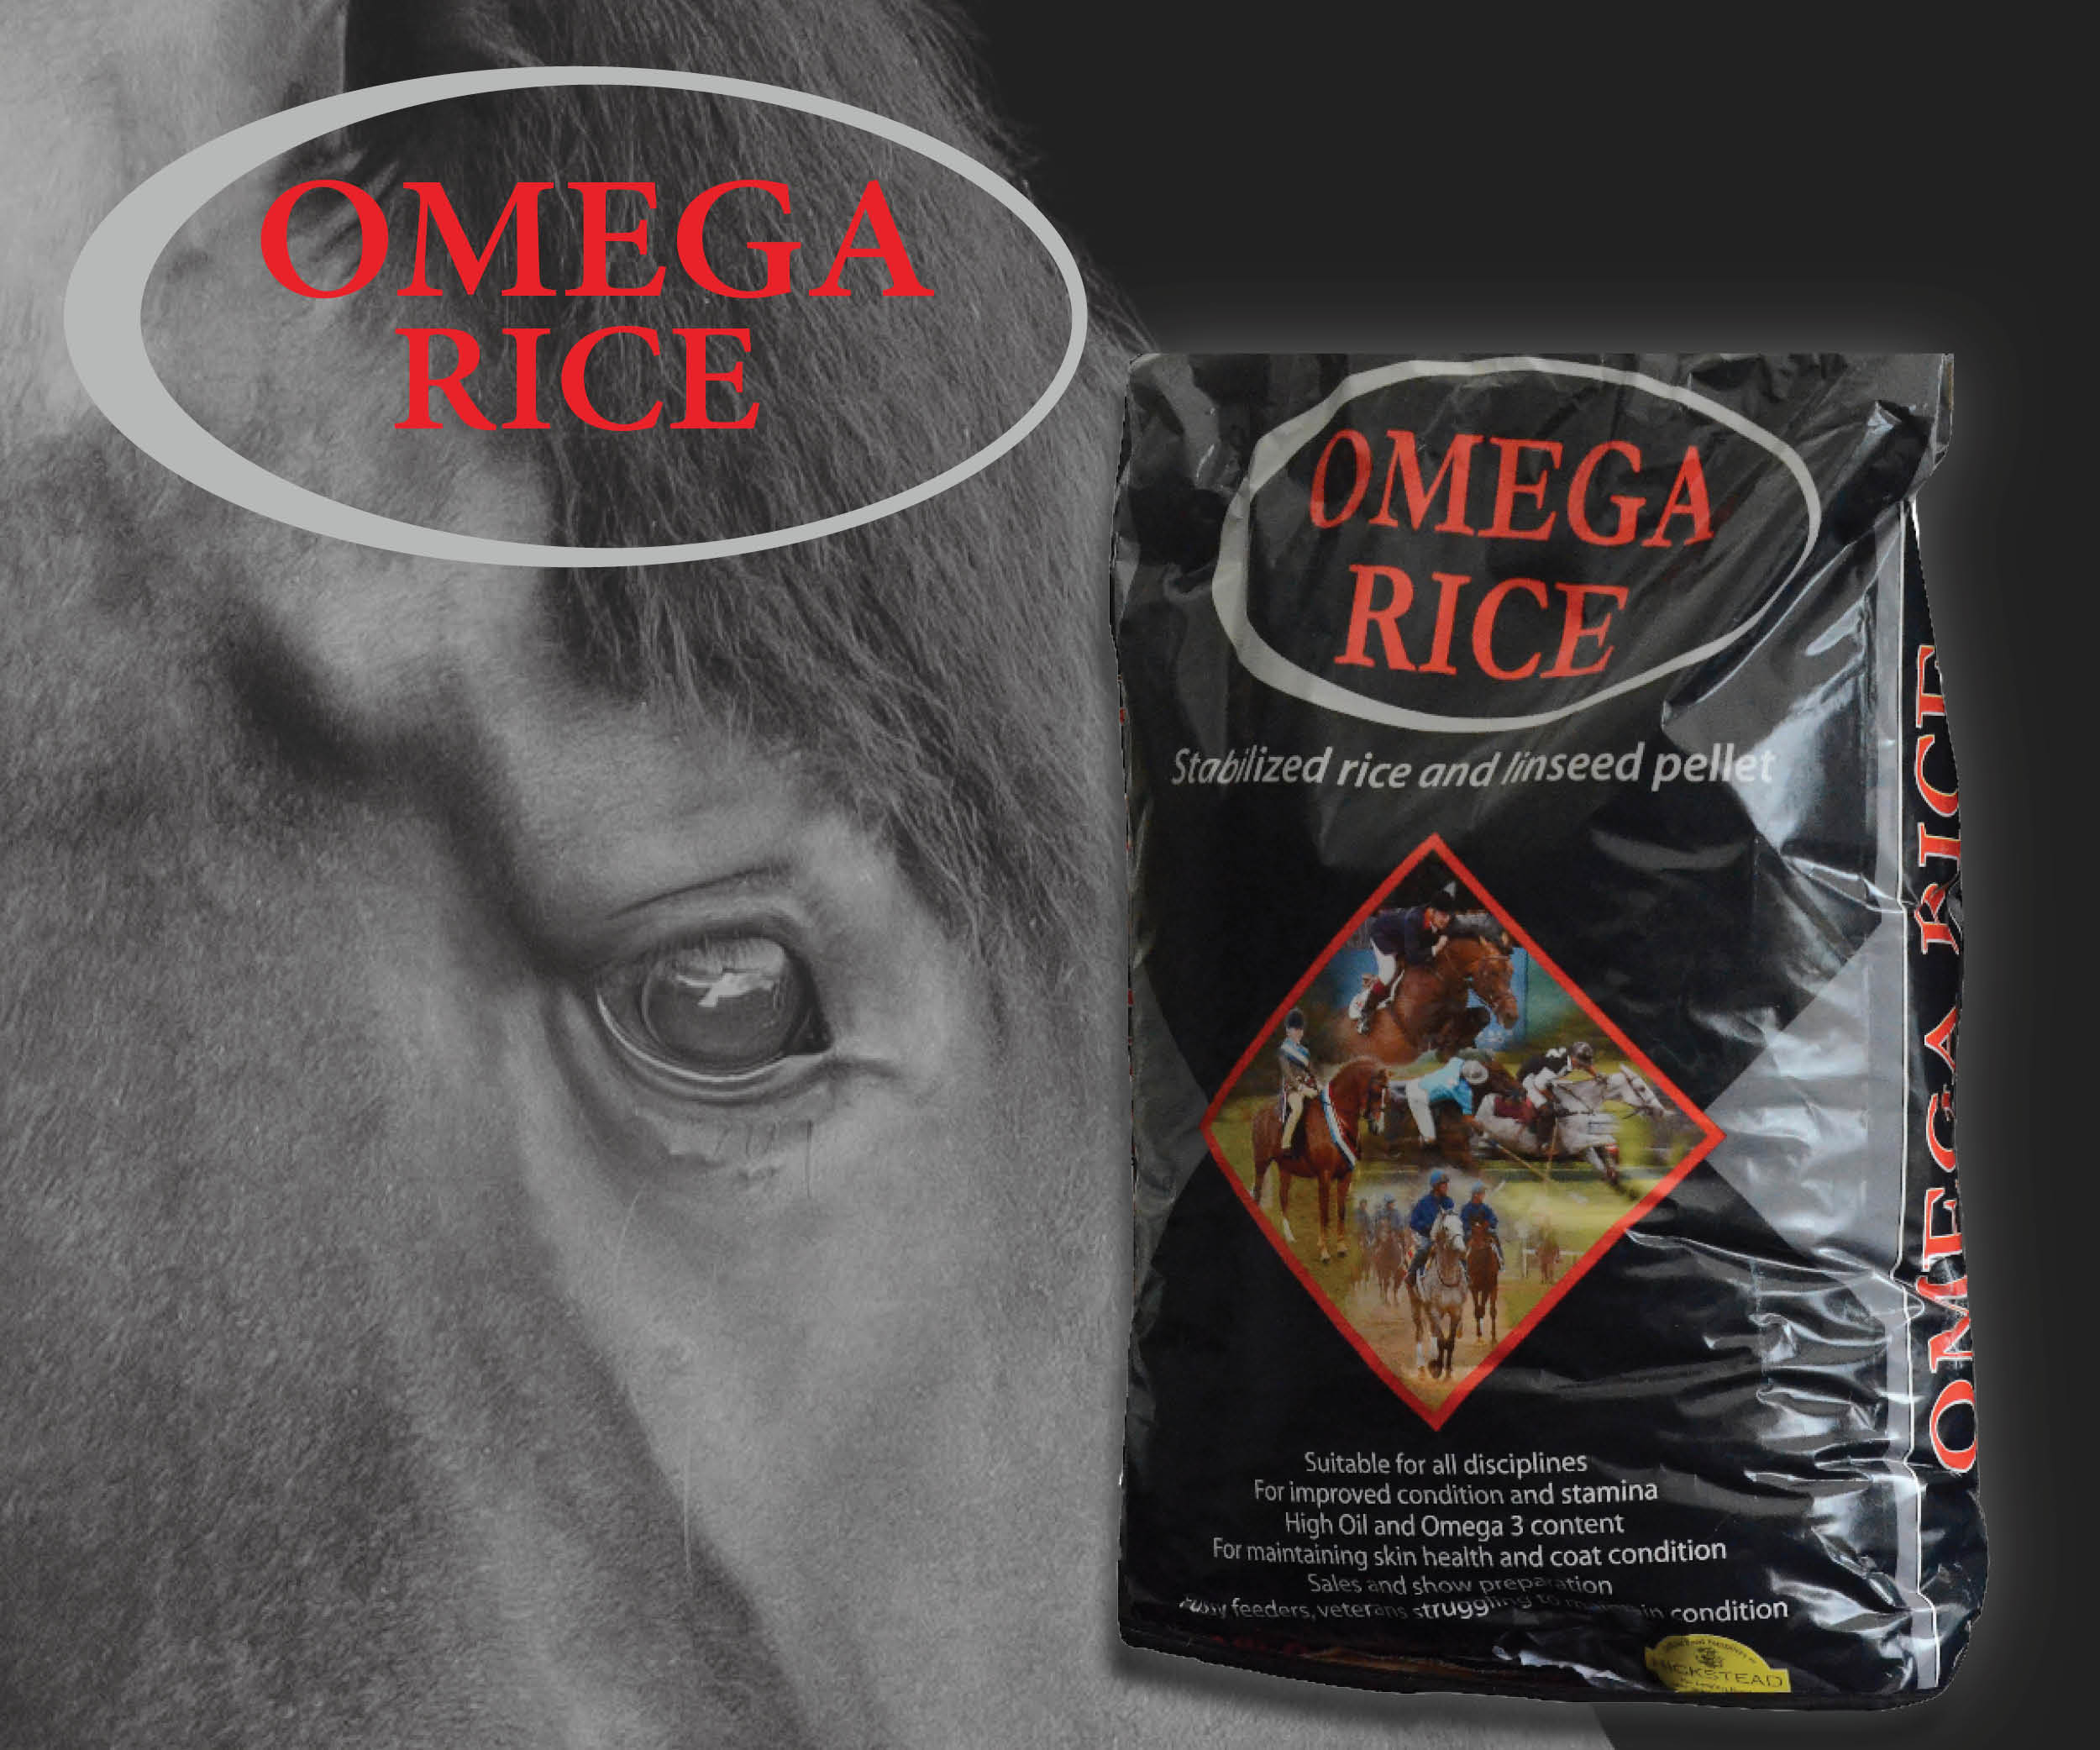 Falcon Equine Feed's Omega Rice – Tried and Tested